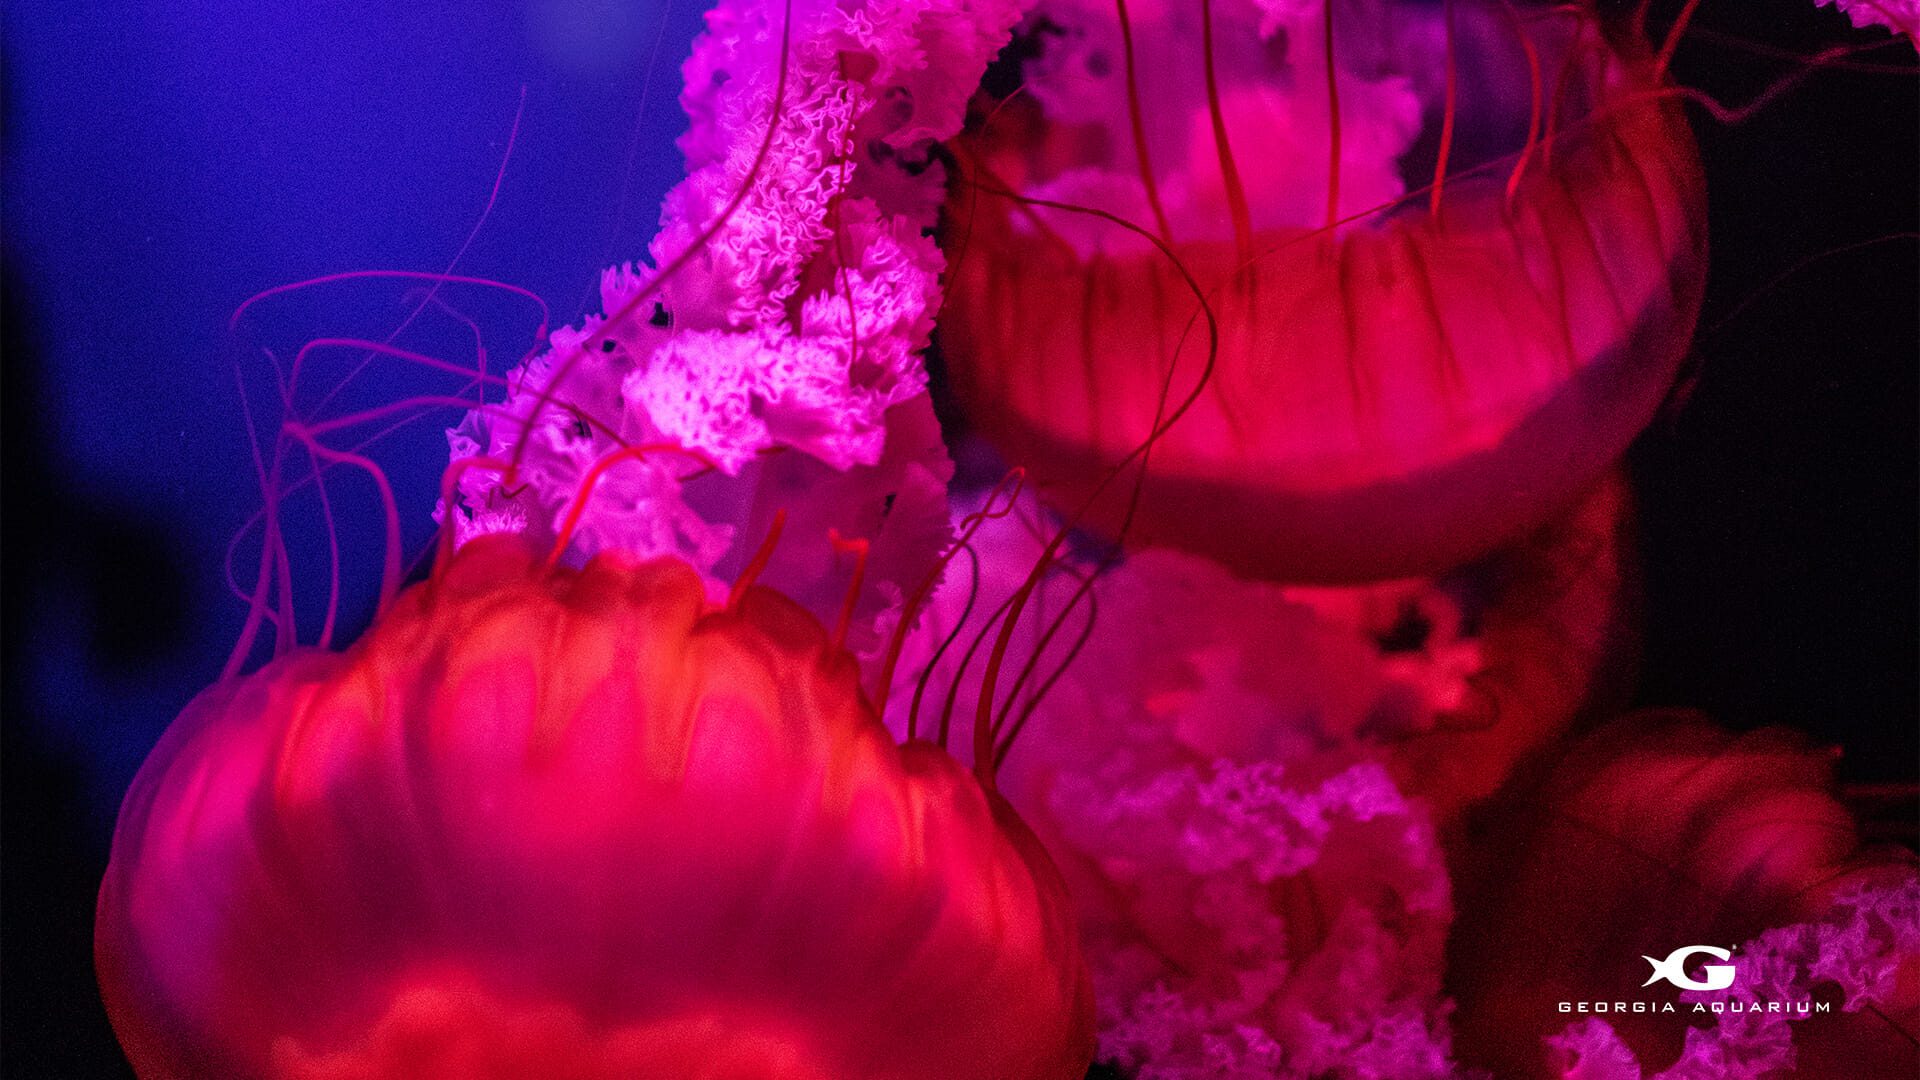 Georgia Aquarium Coral Reef Awareness Week